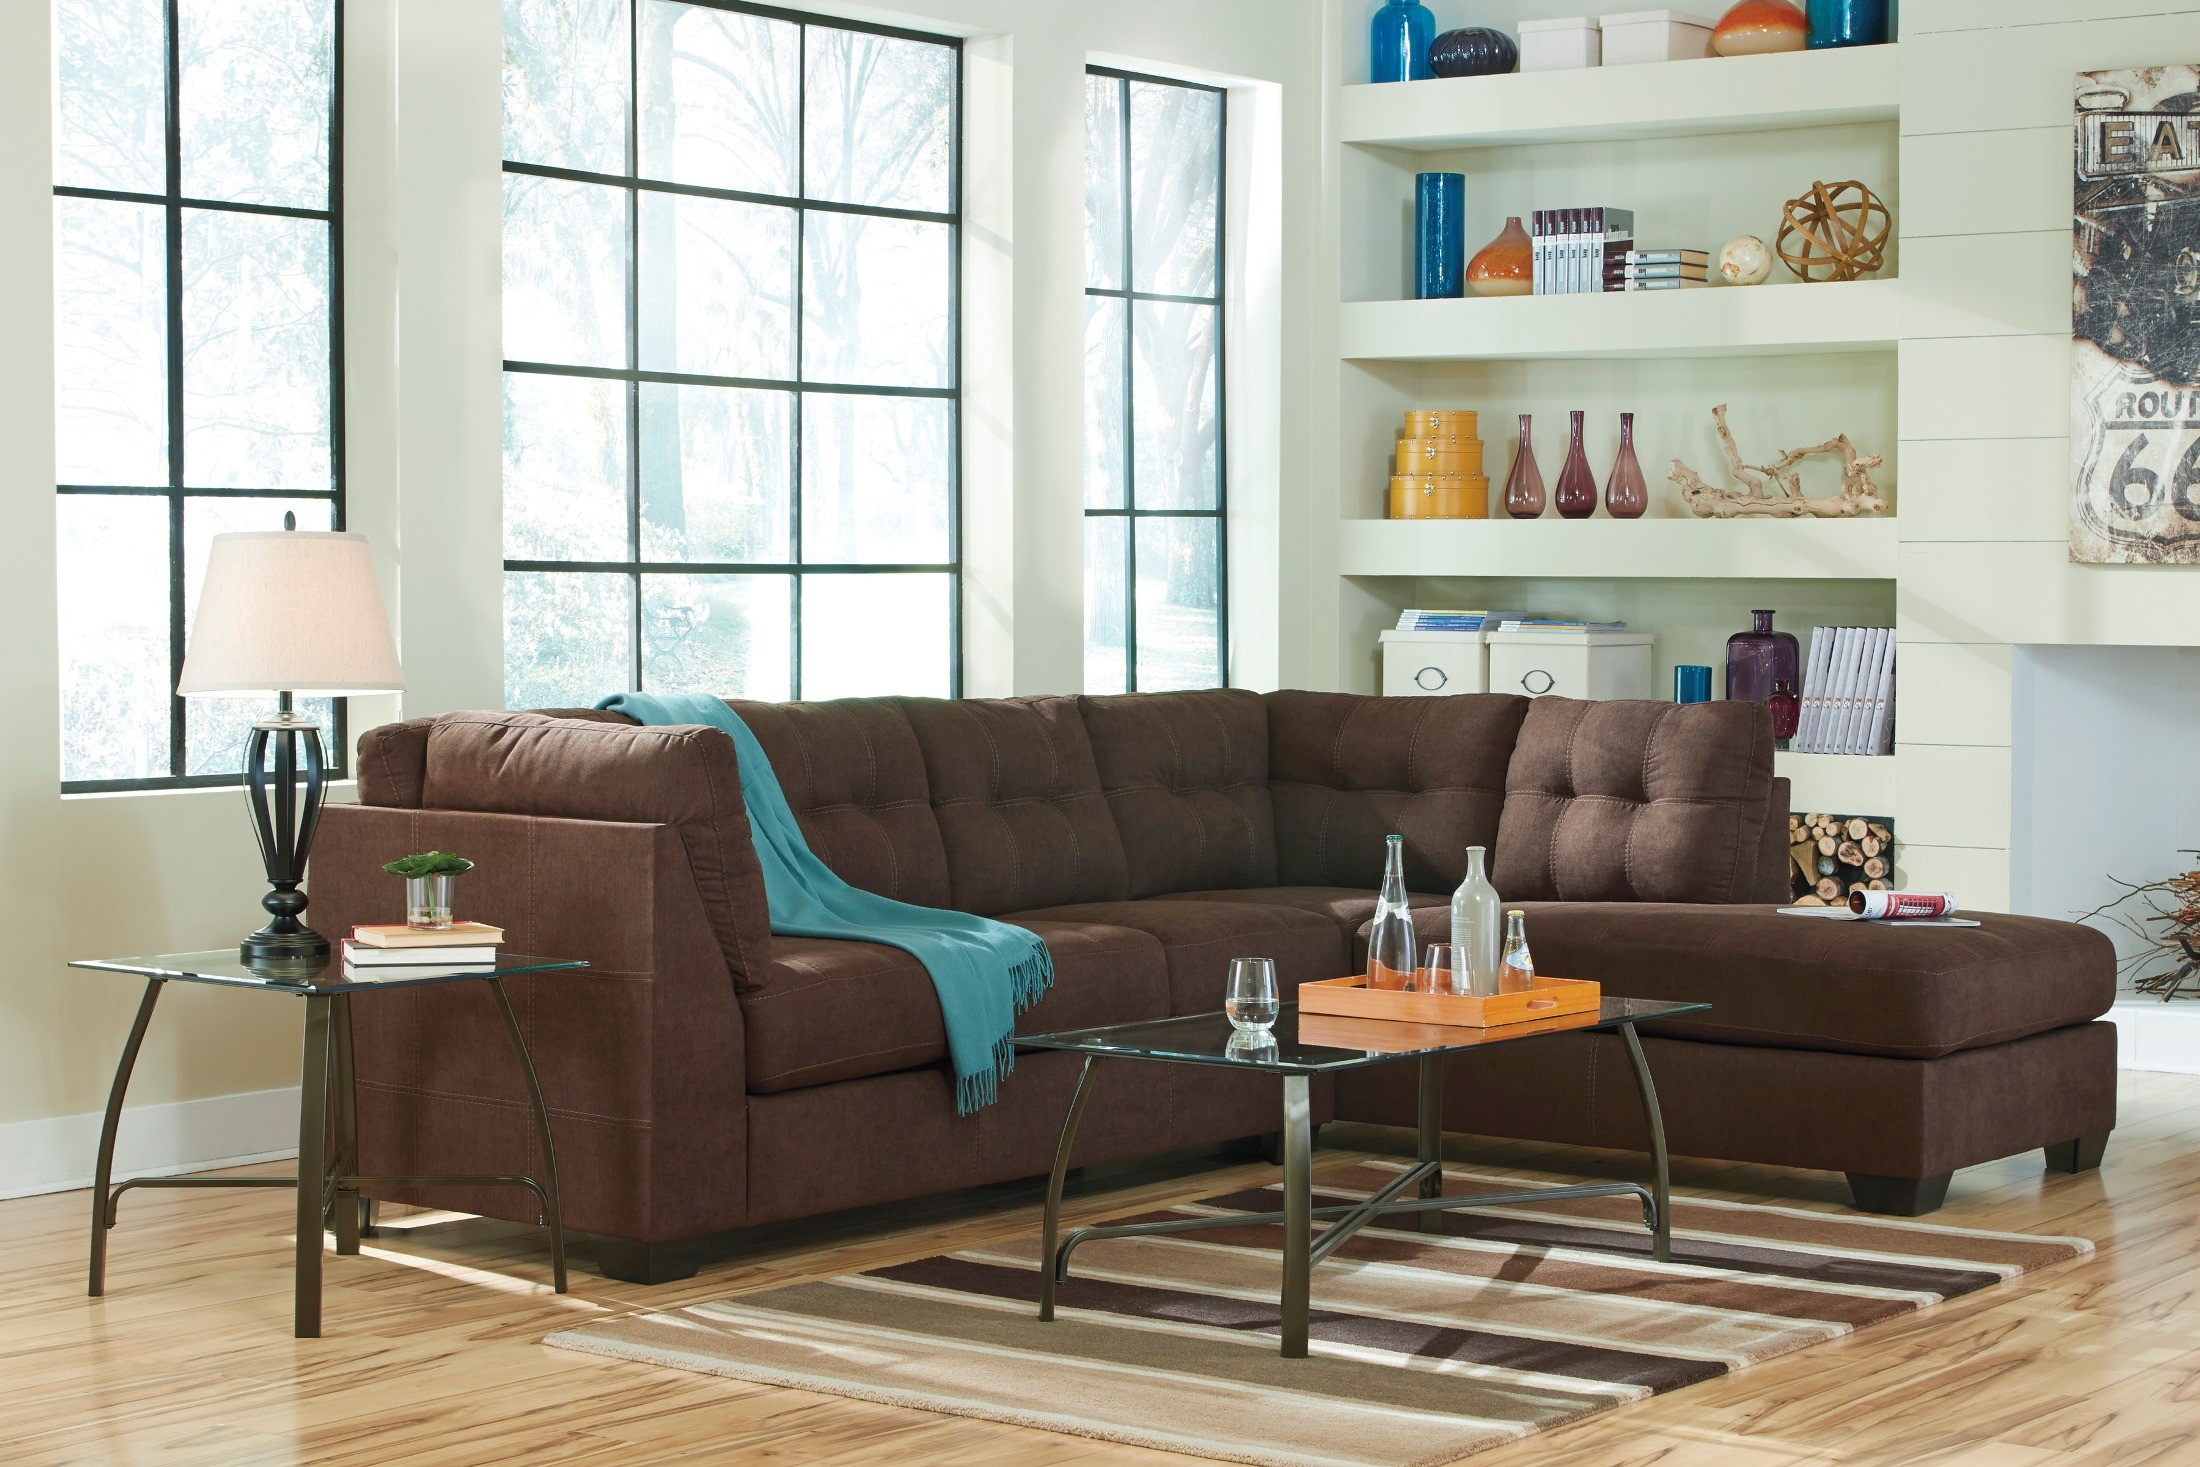 Walnut Living Room Furniture Sets Maier Walnut Raf Sectional From Ashley 45201 17 66 Coleman